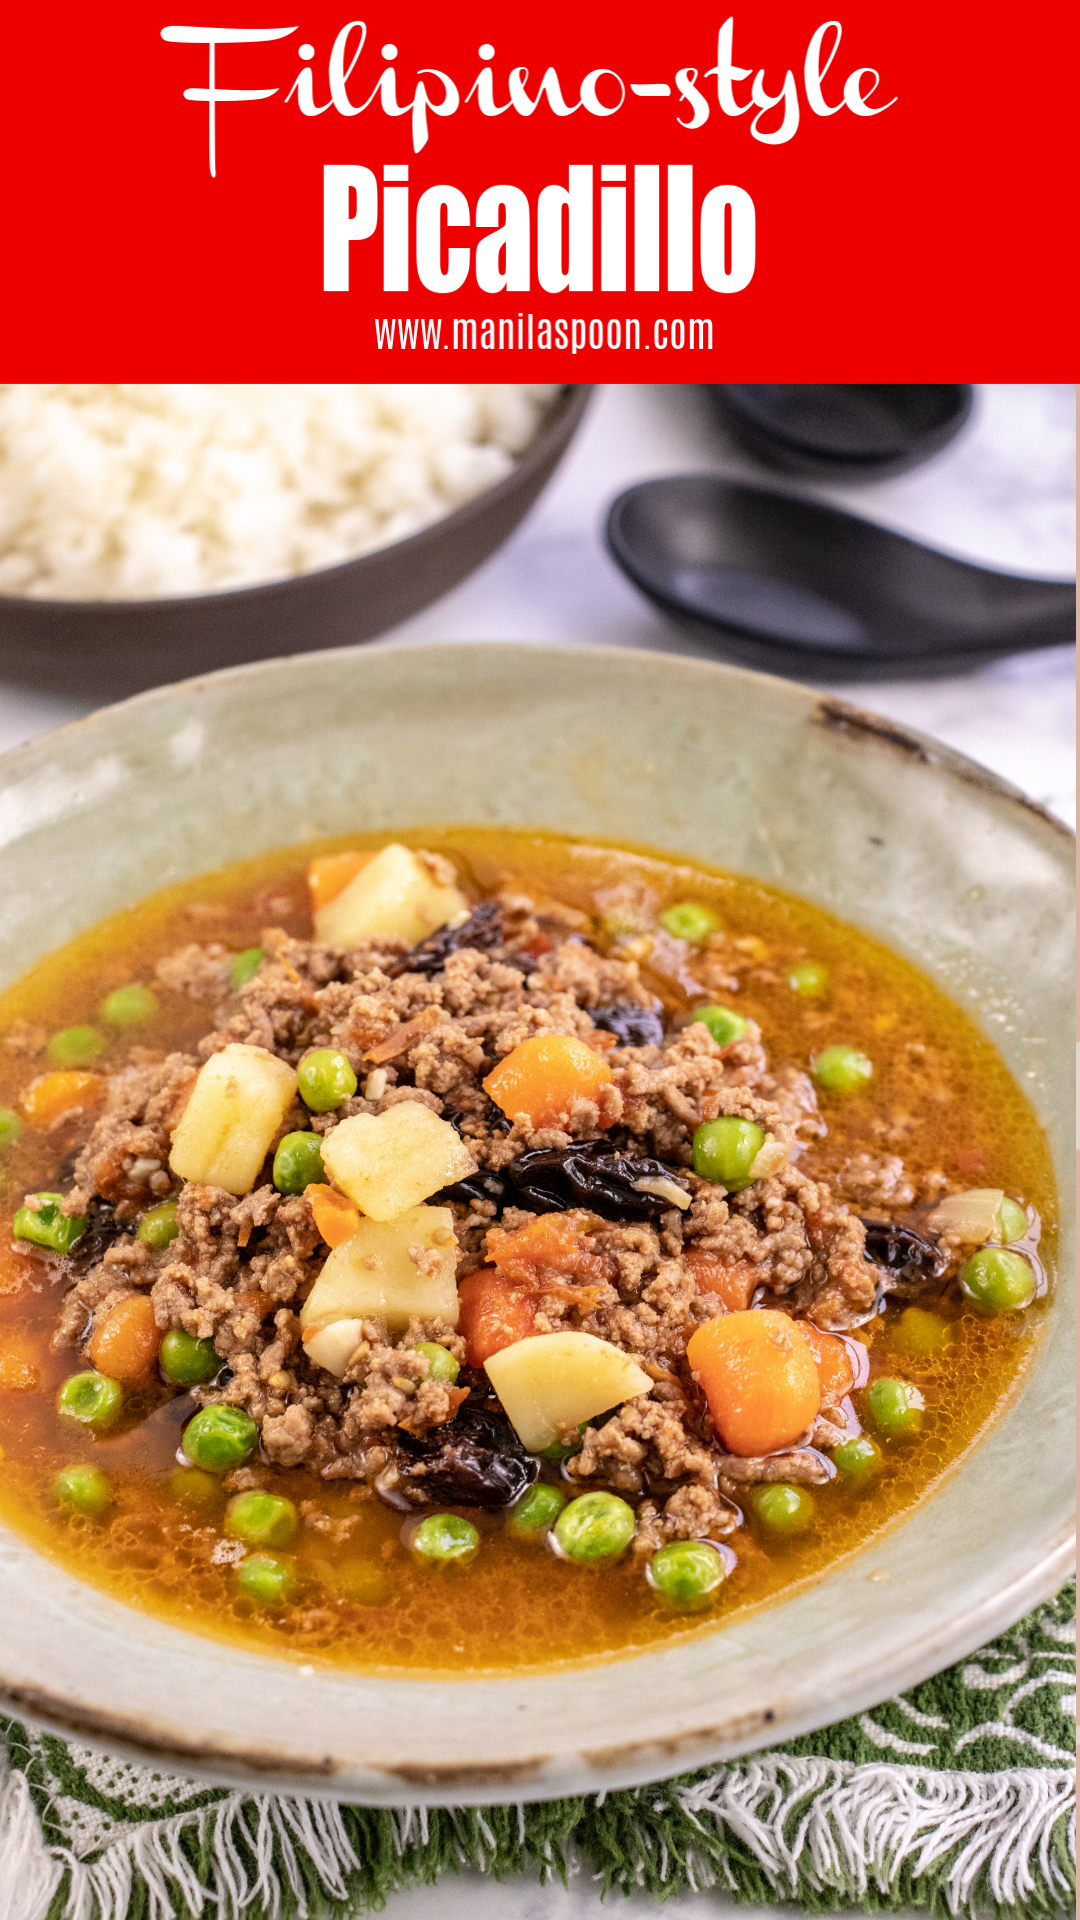 Instant Pot Or Stove Top Filipino Style Picadillo Ground Beef And Vegetable Stew Manila Spoon In 2020 Ground Beef Filipino Recipe Recipes Multi Cooker Recipes